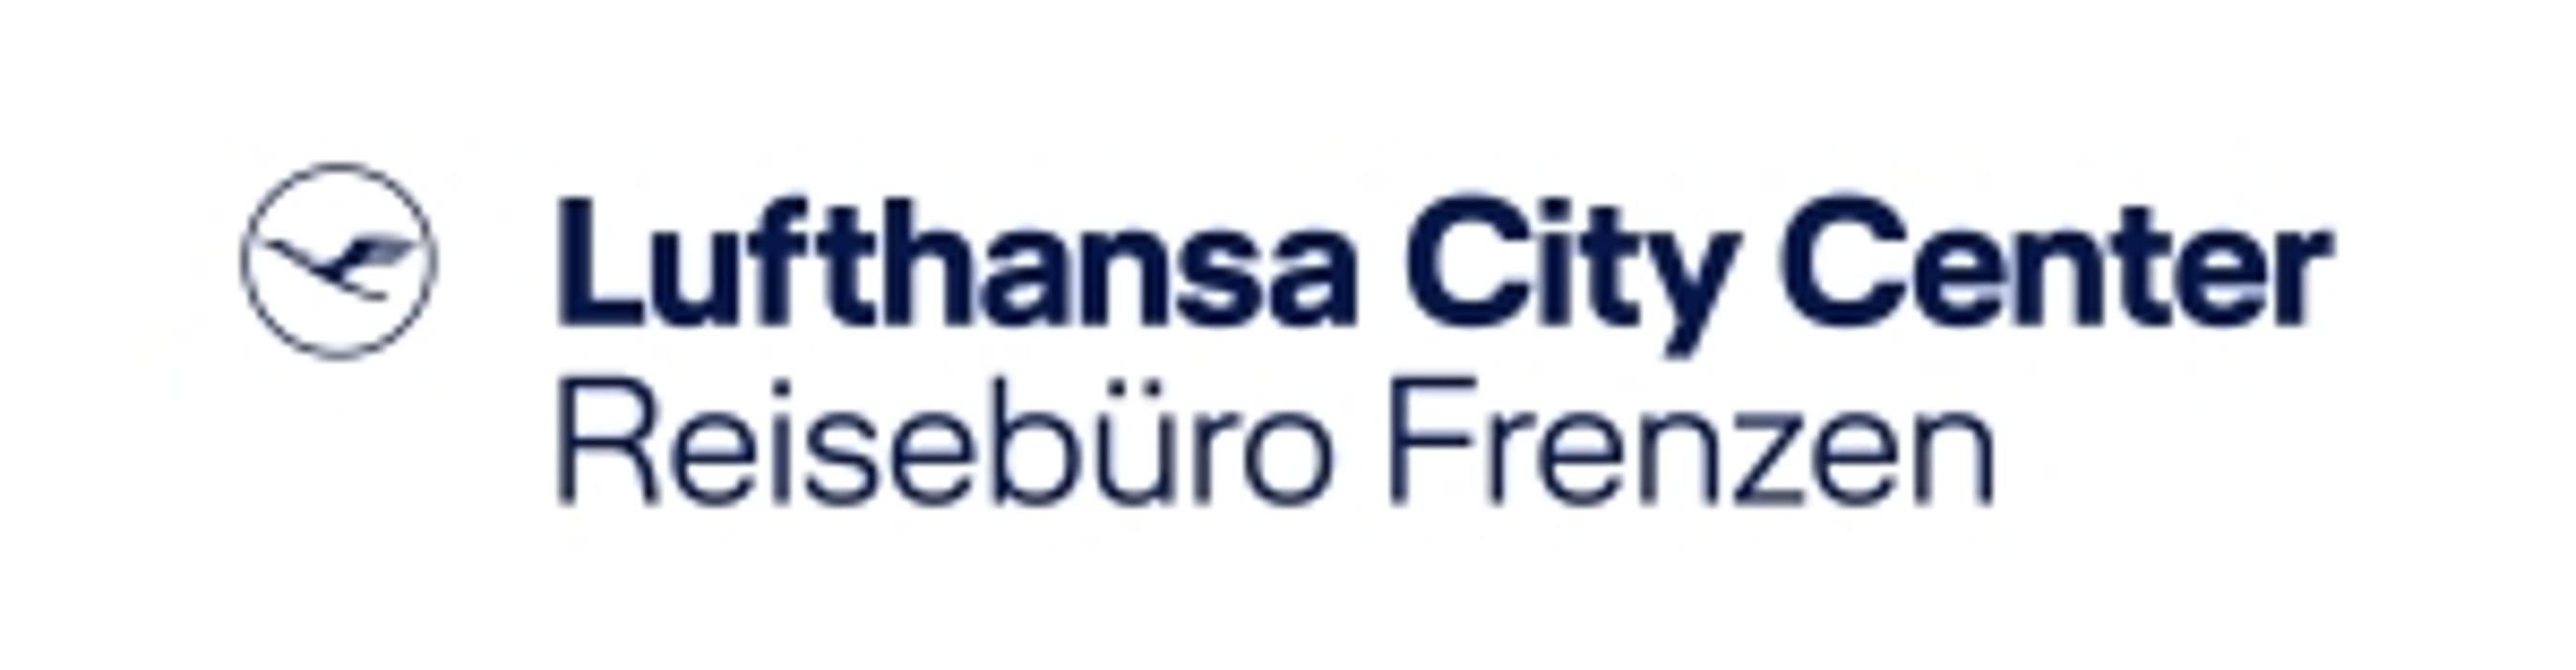 Lufthansa City Center Reisebüro Frenzen